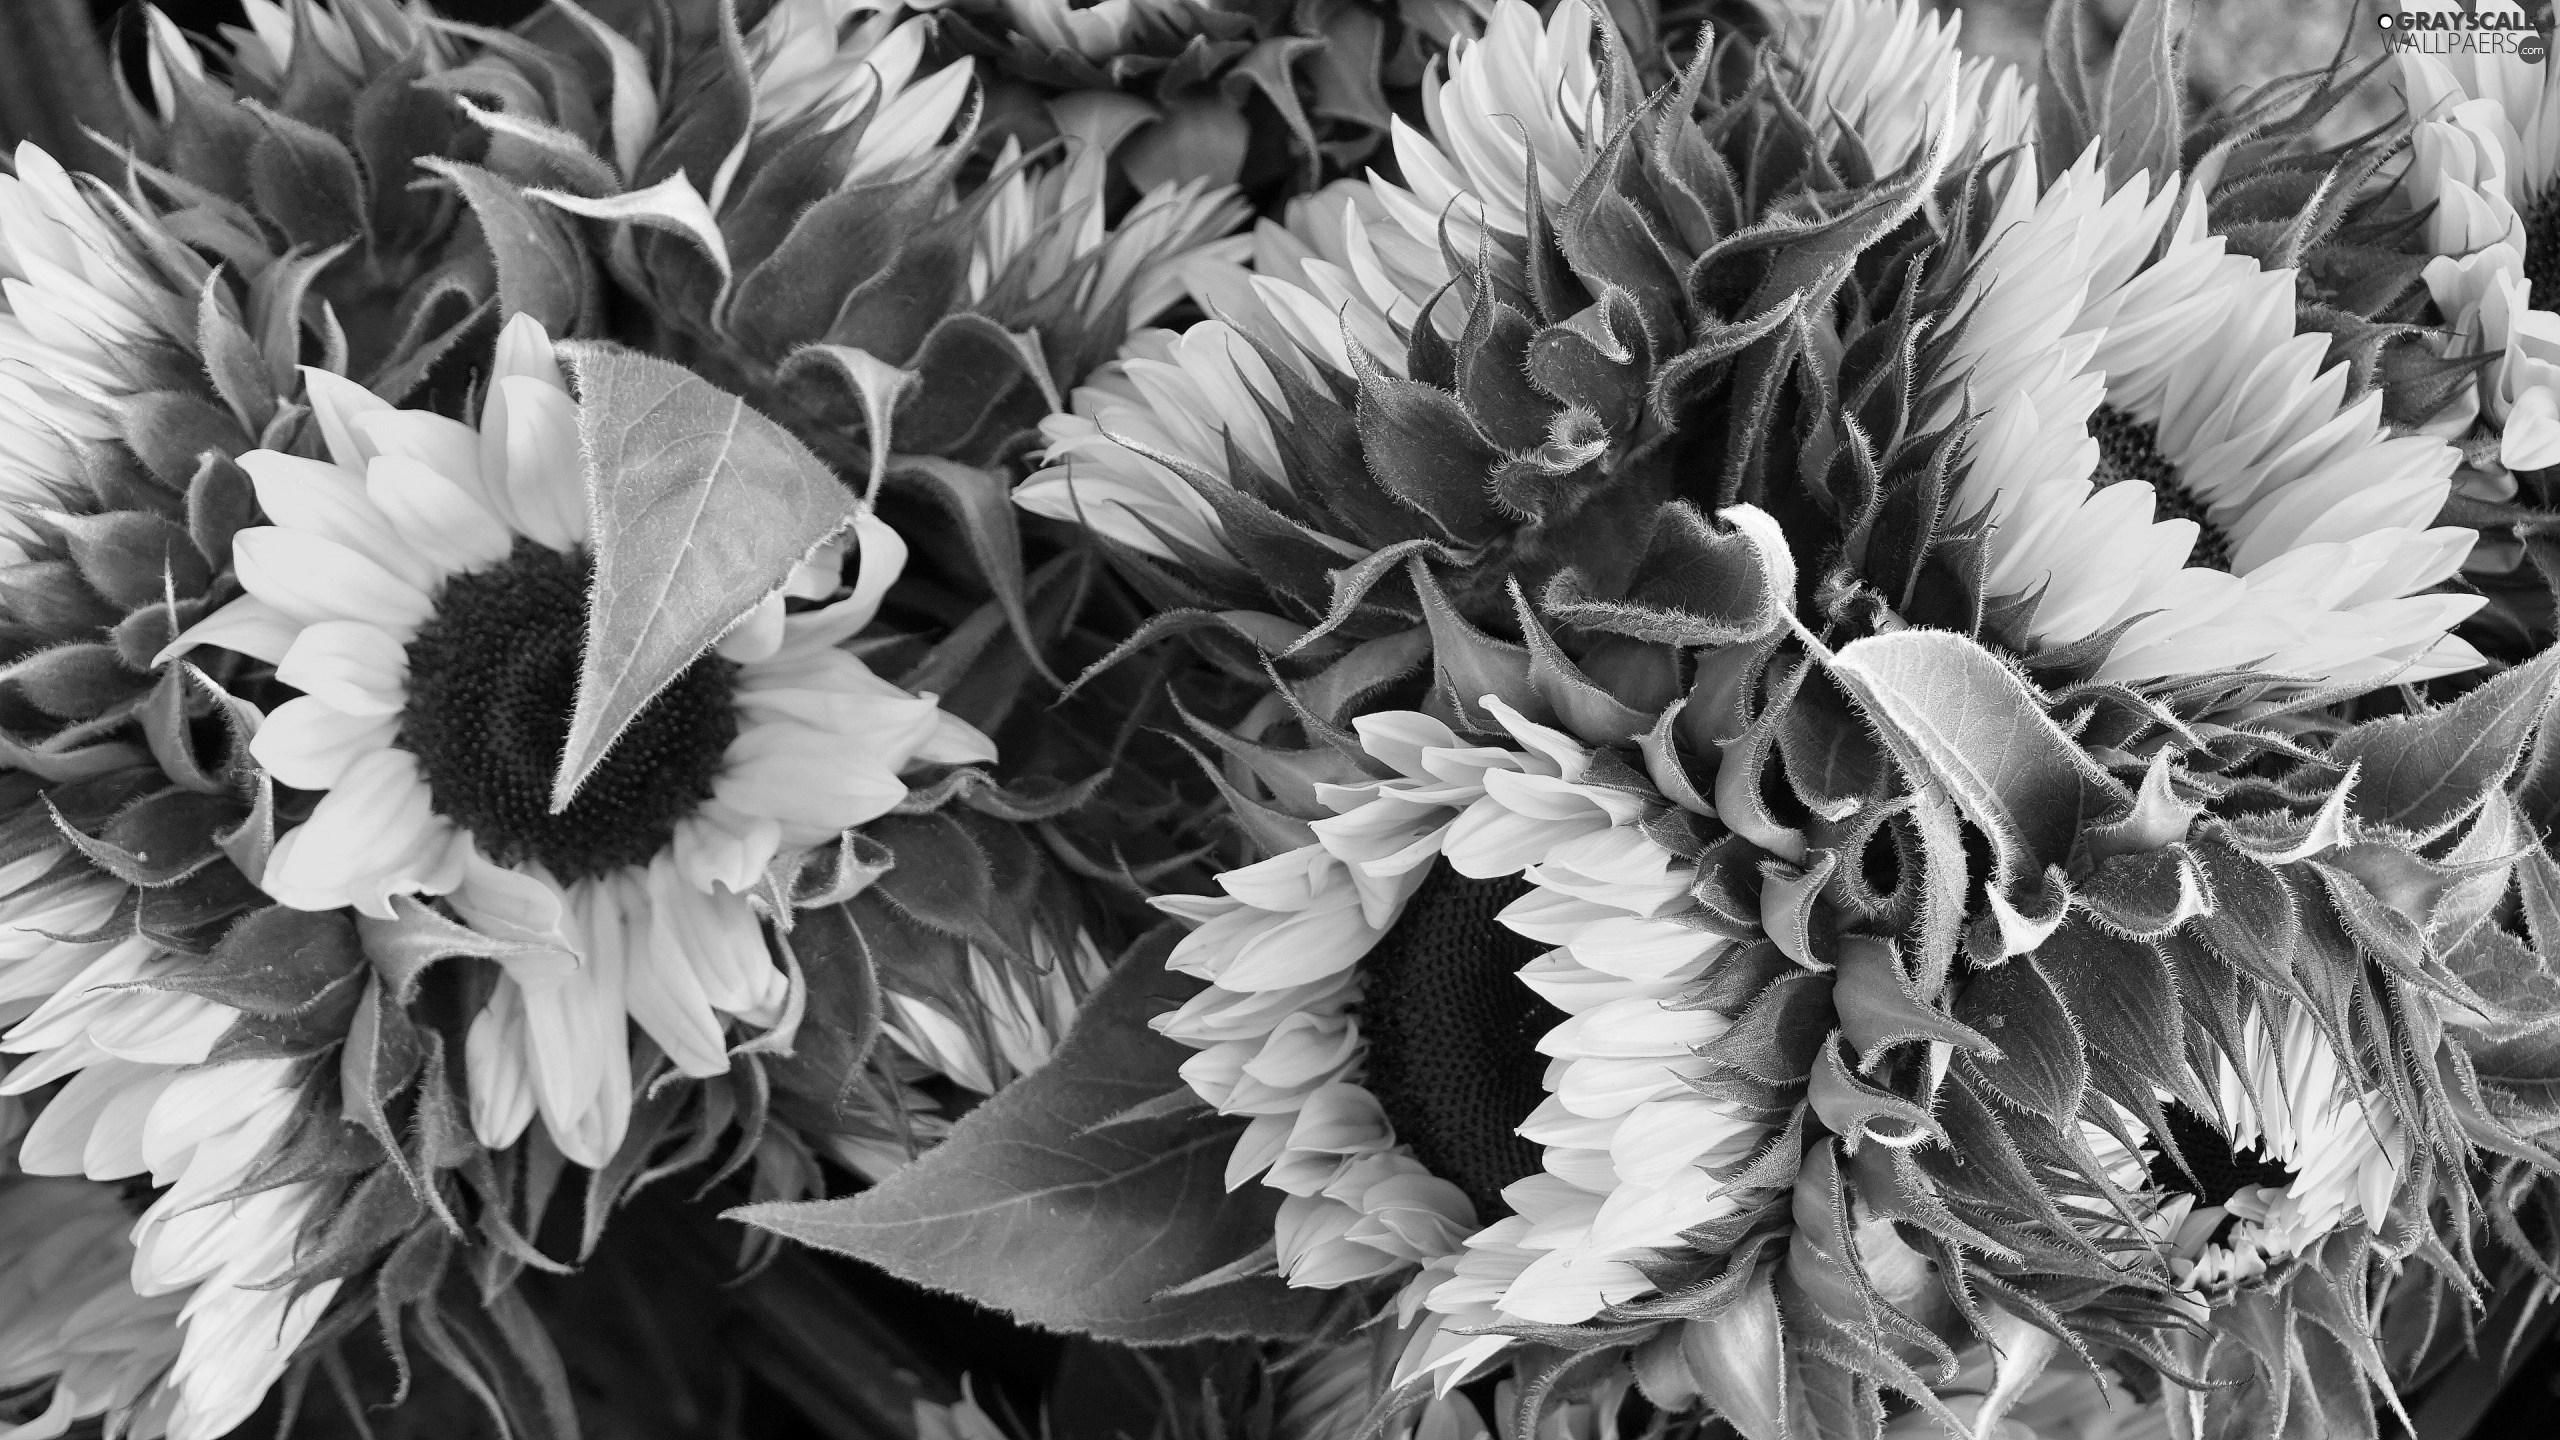 Leaf, developed, Nice sunflowers